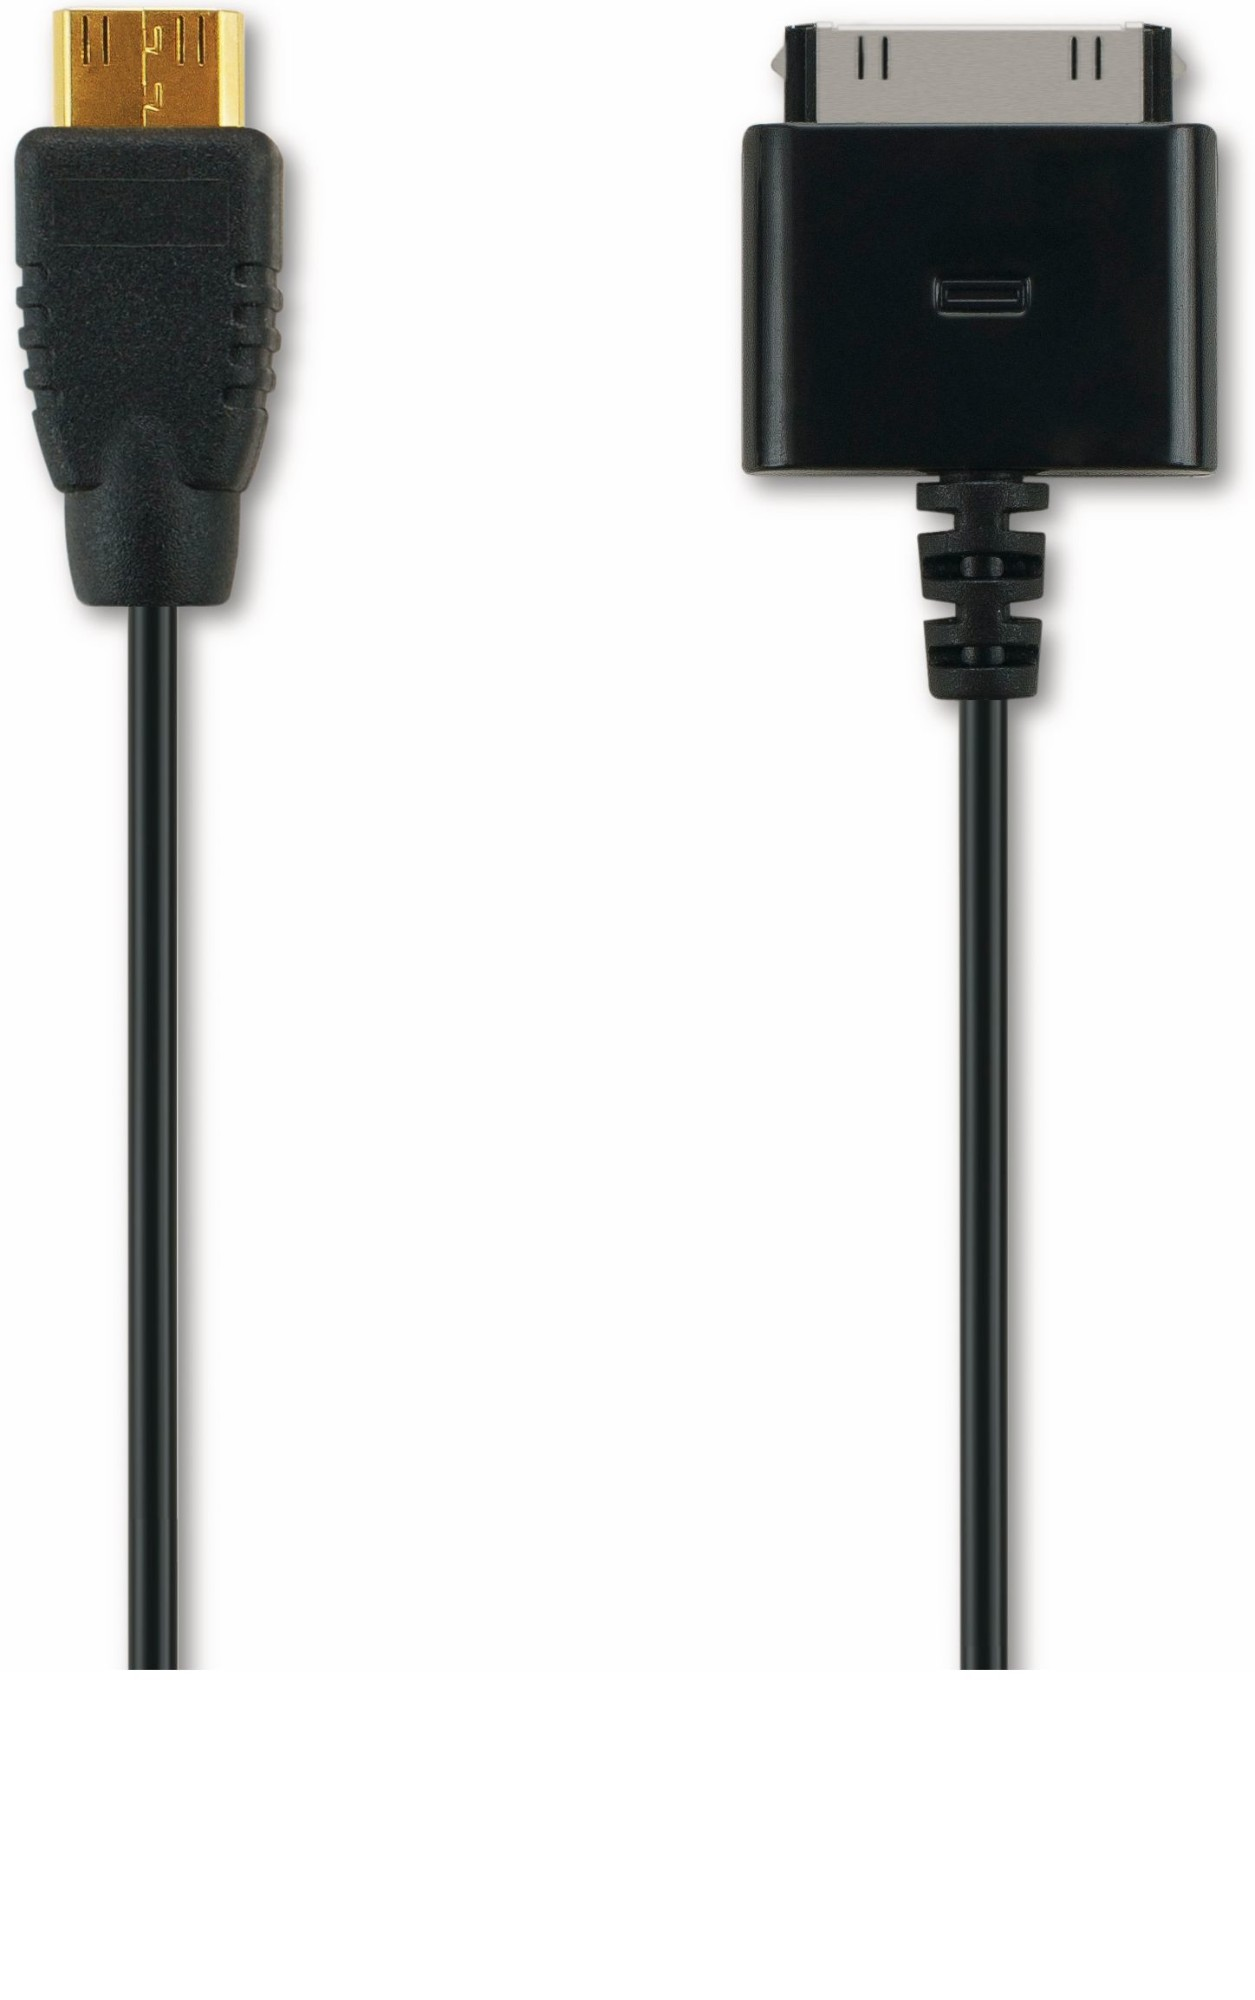 Philips PicoPix Audio/video cable for iPhone/iPod/iPad PPA1280/000